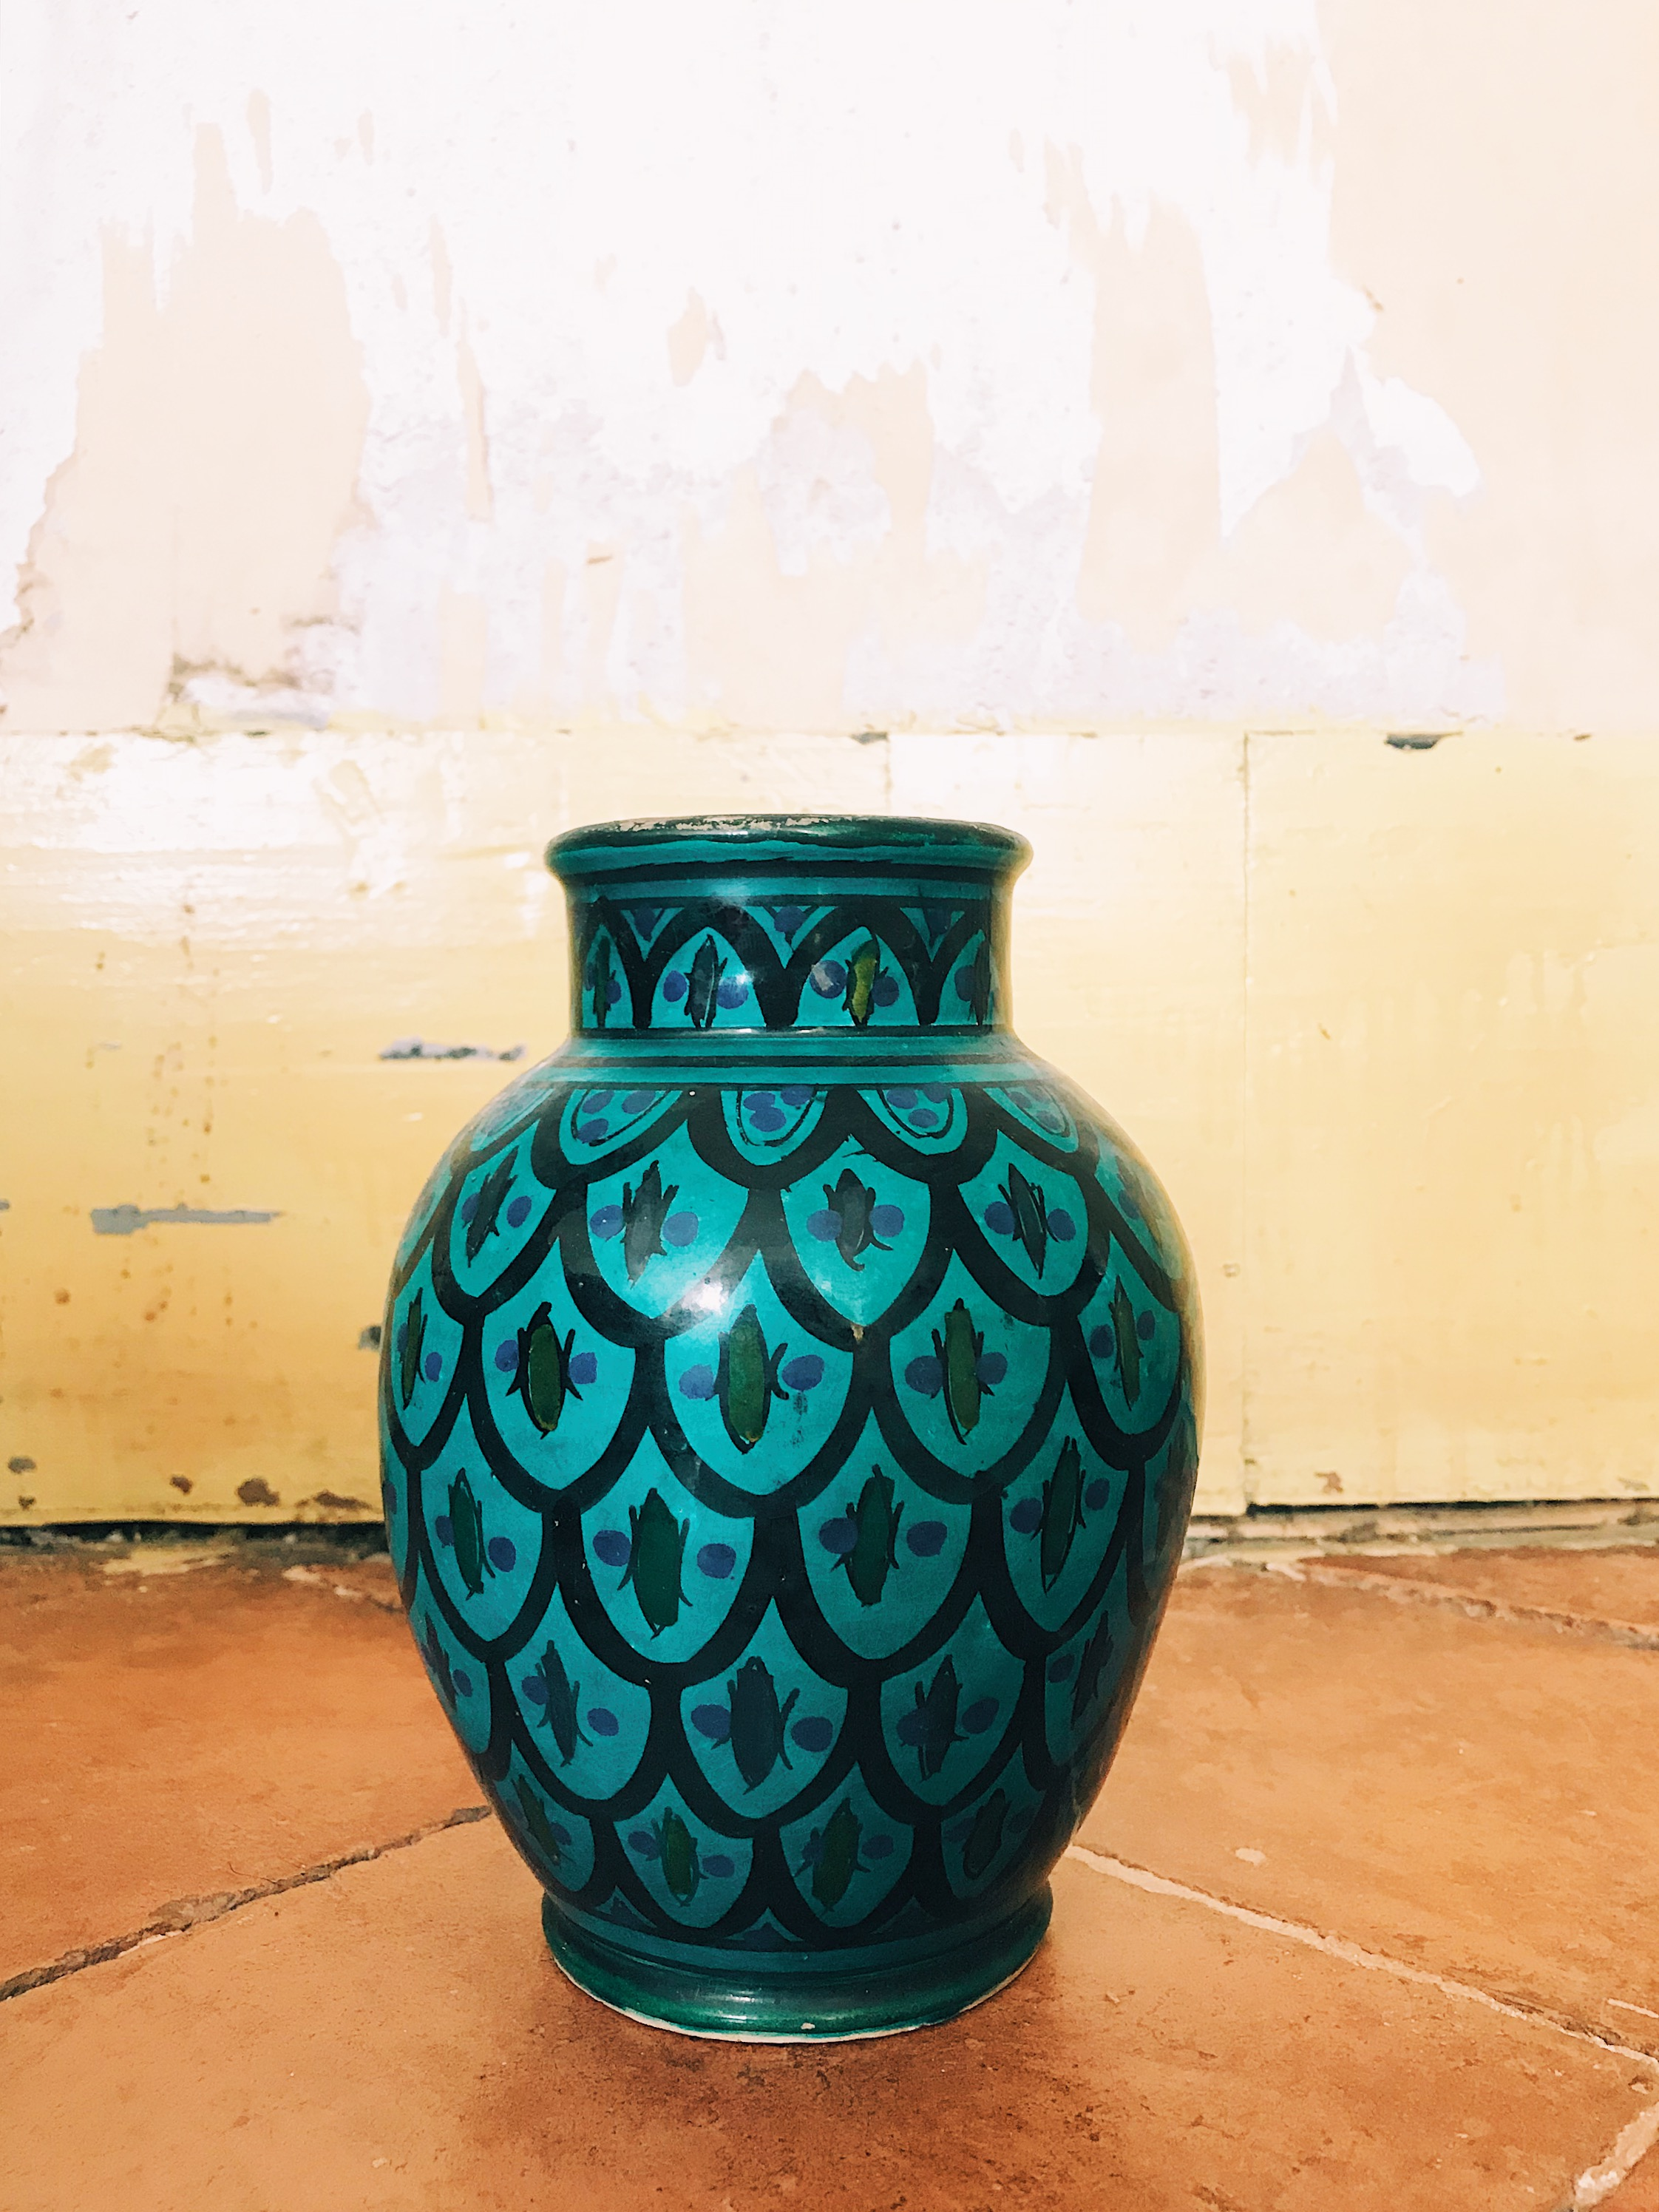 A handsome turquoise hand-painted jar – picked up at a local Vide Grenier for 8 euros!